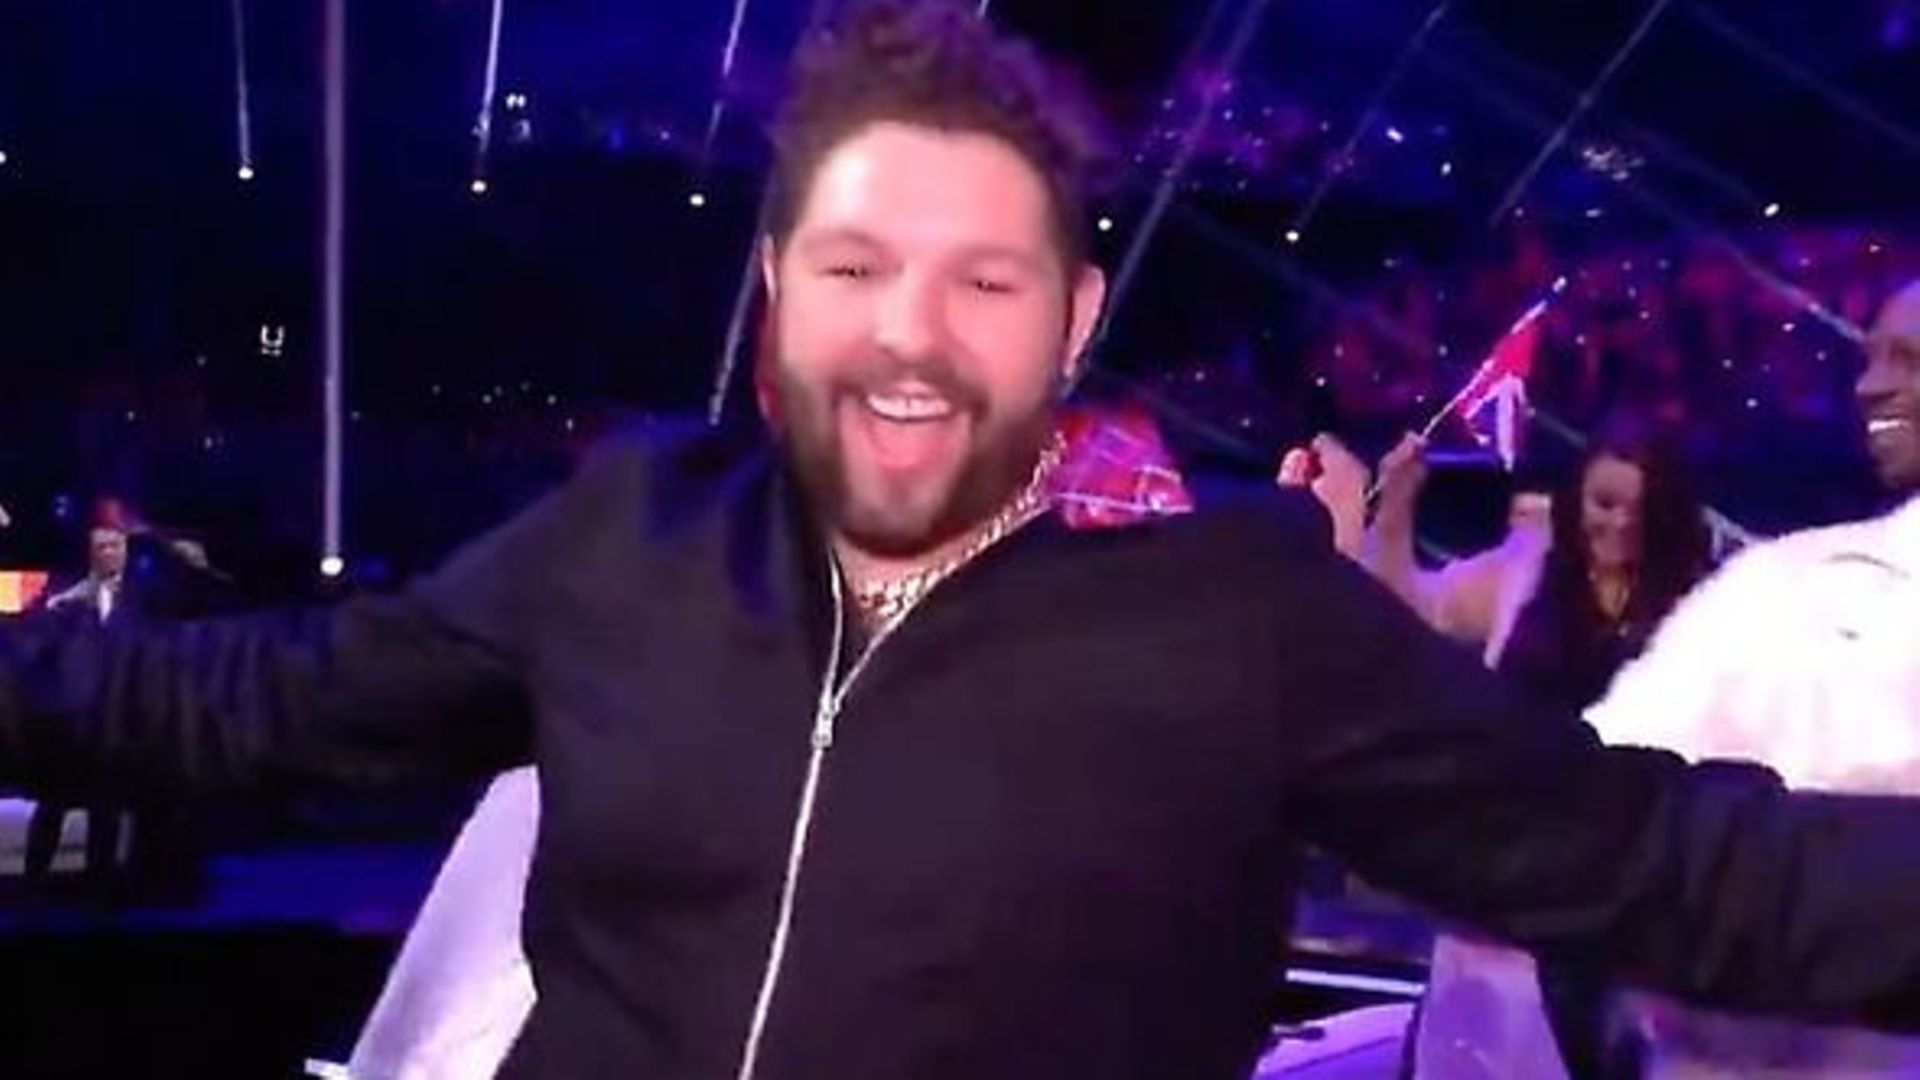 James Newman at the Eurovision Song Contest 2021 - Credit: BBC